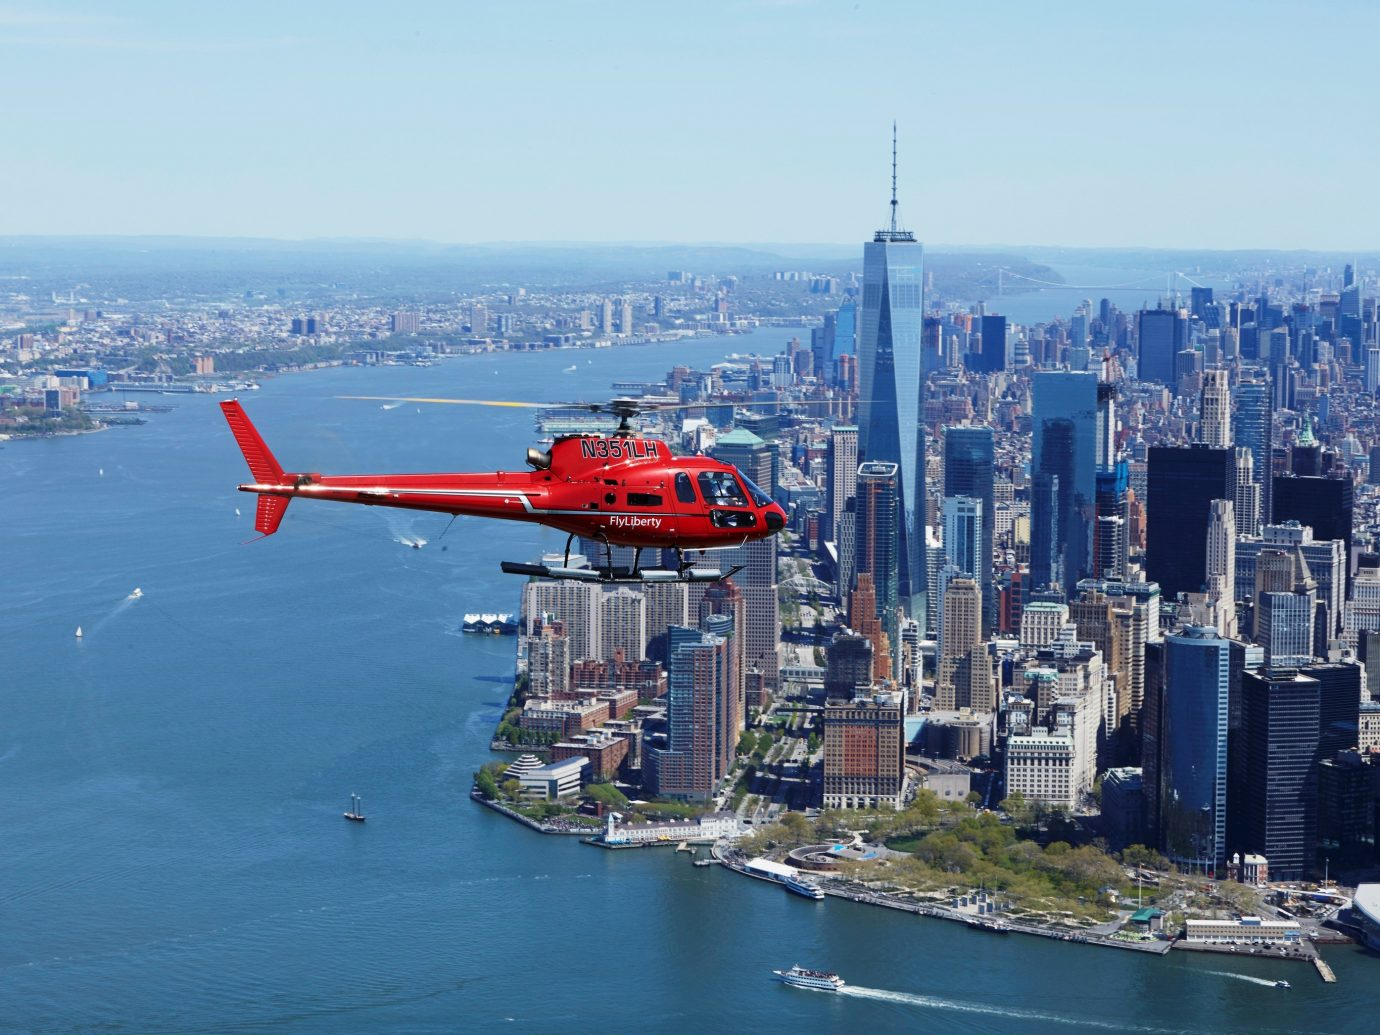 Helicopter over NYC